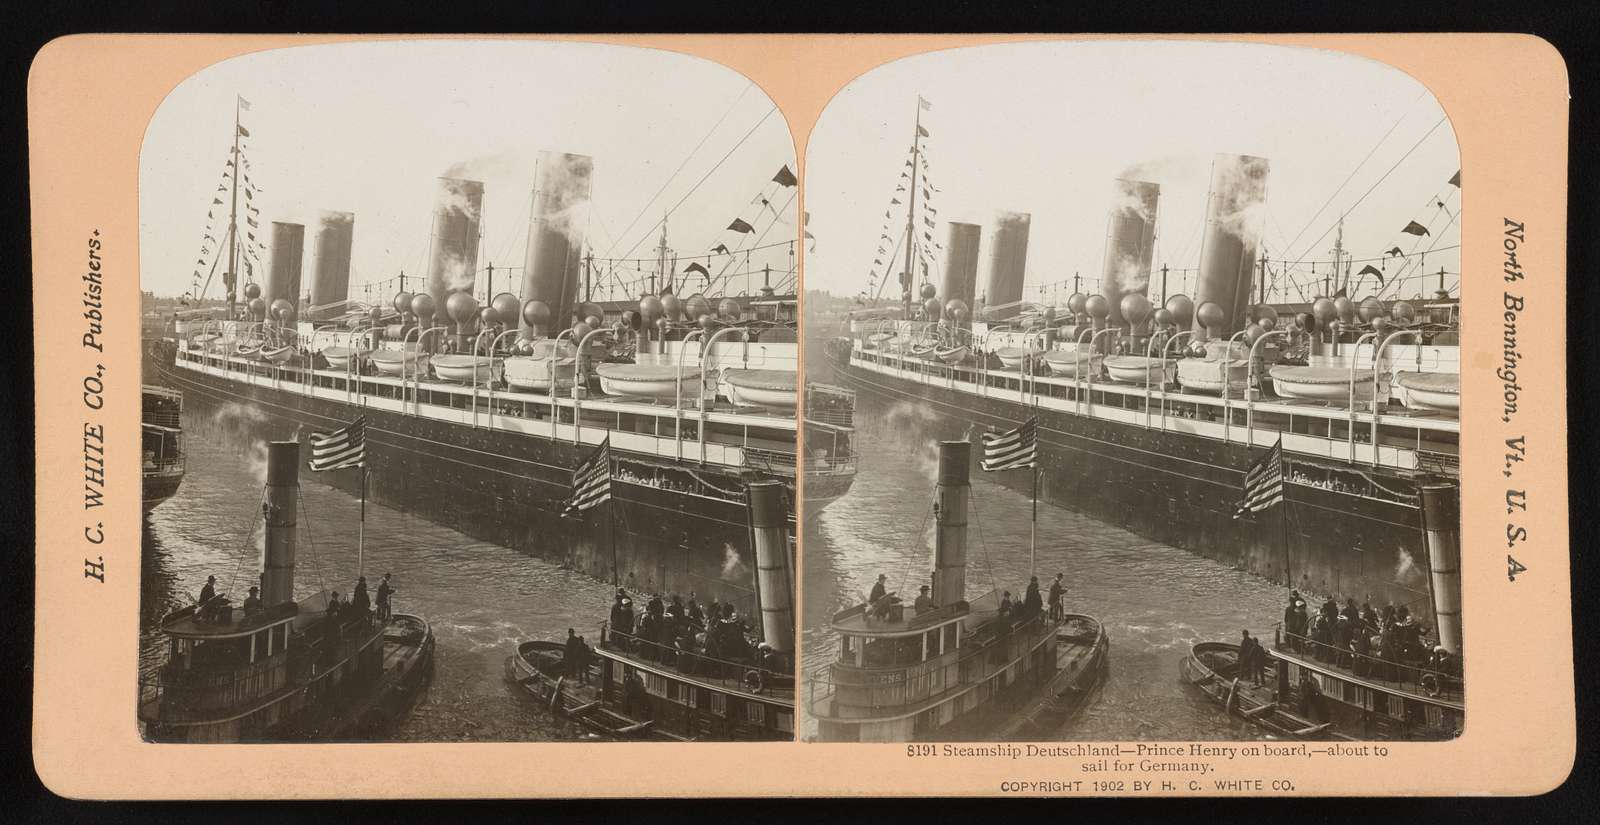 Steamship Deutschland -- Prince Henry on board,--about to sail for Germany